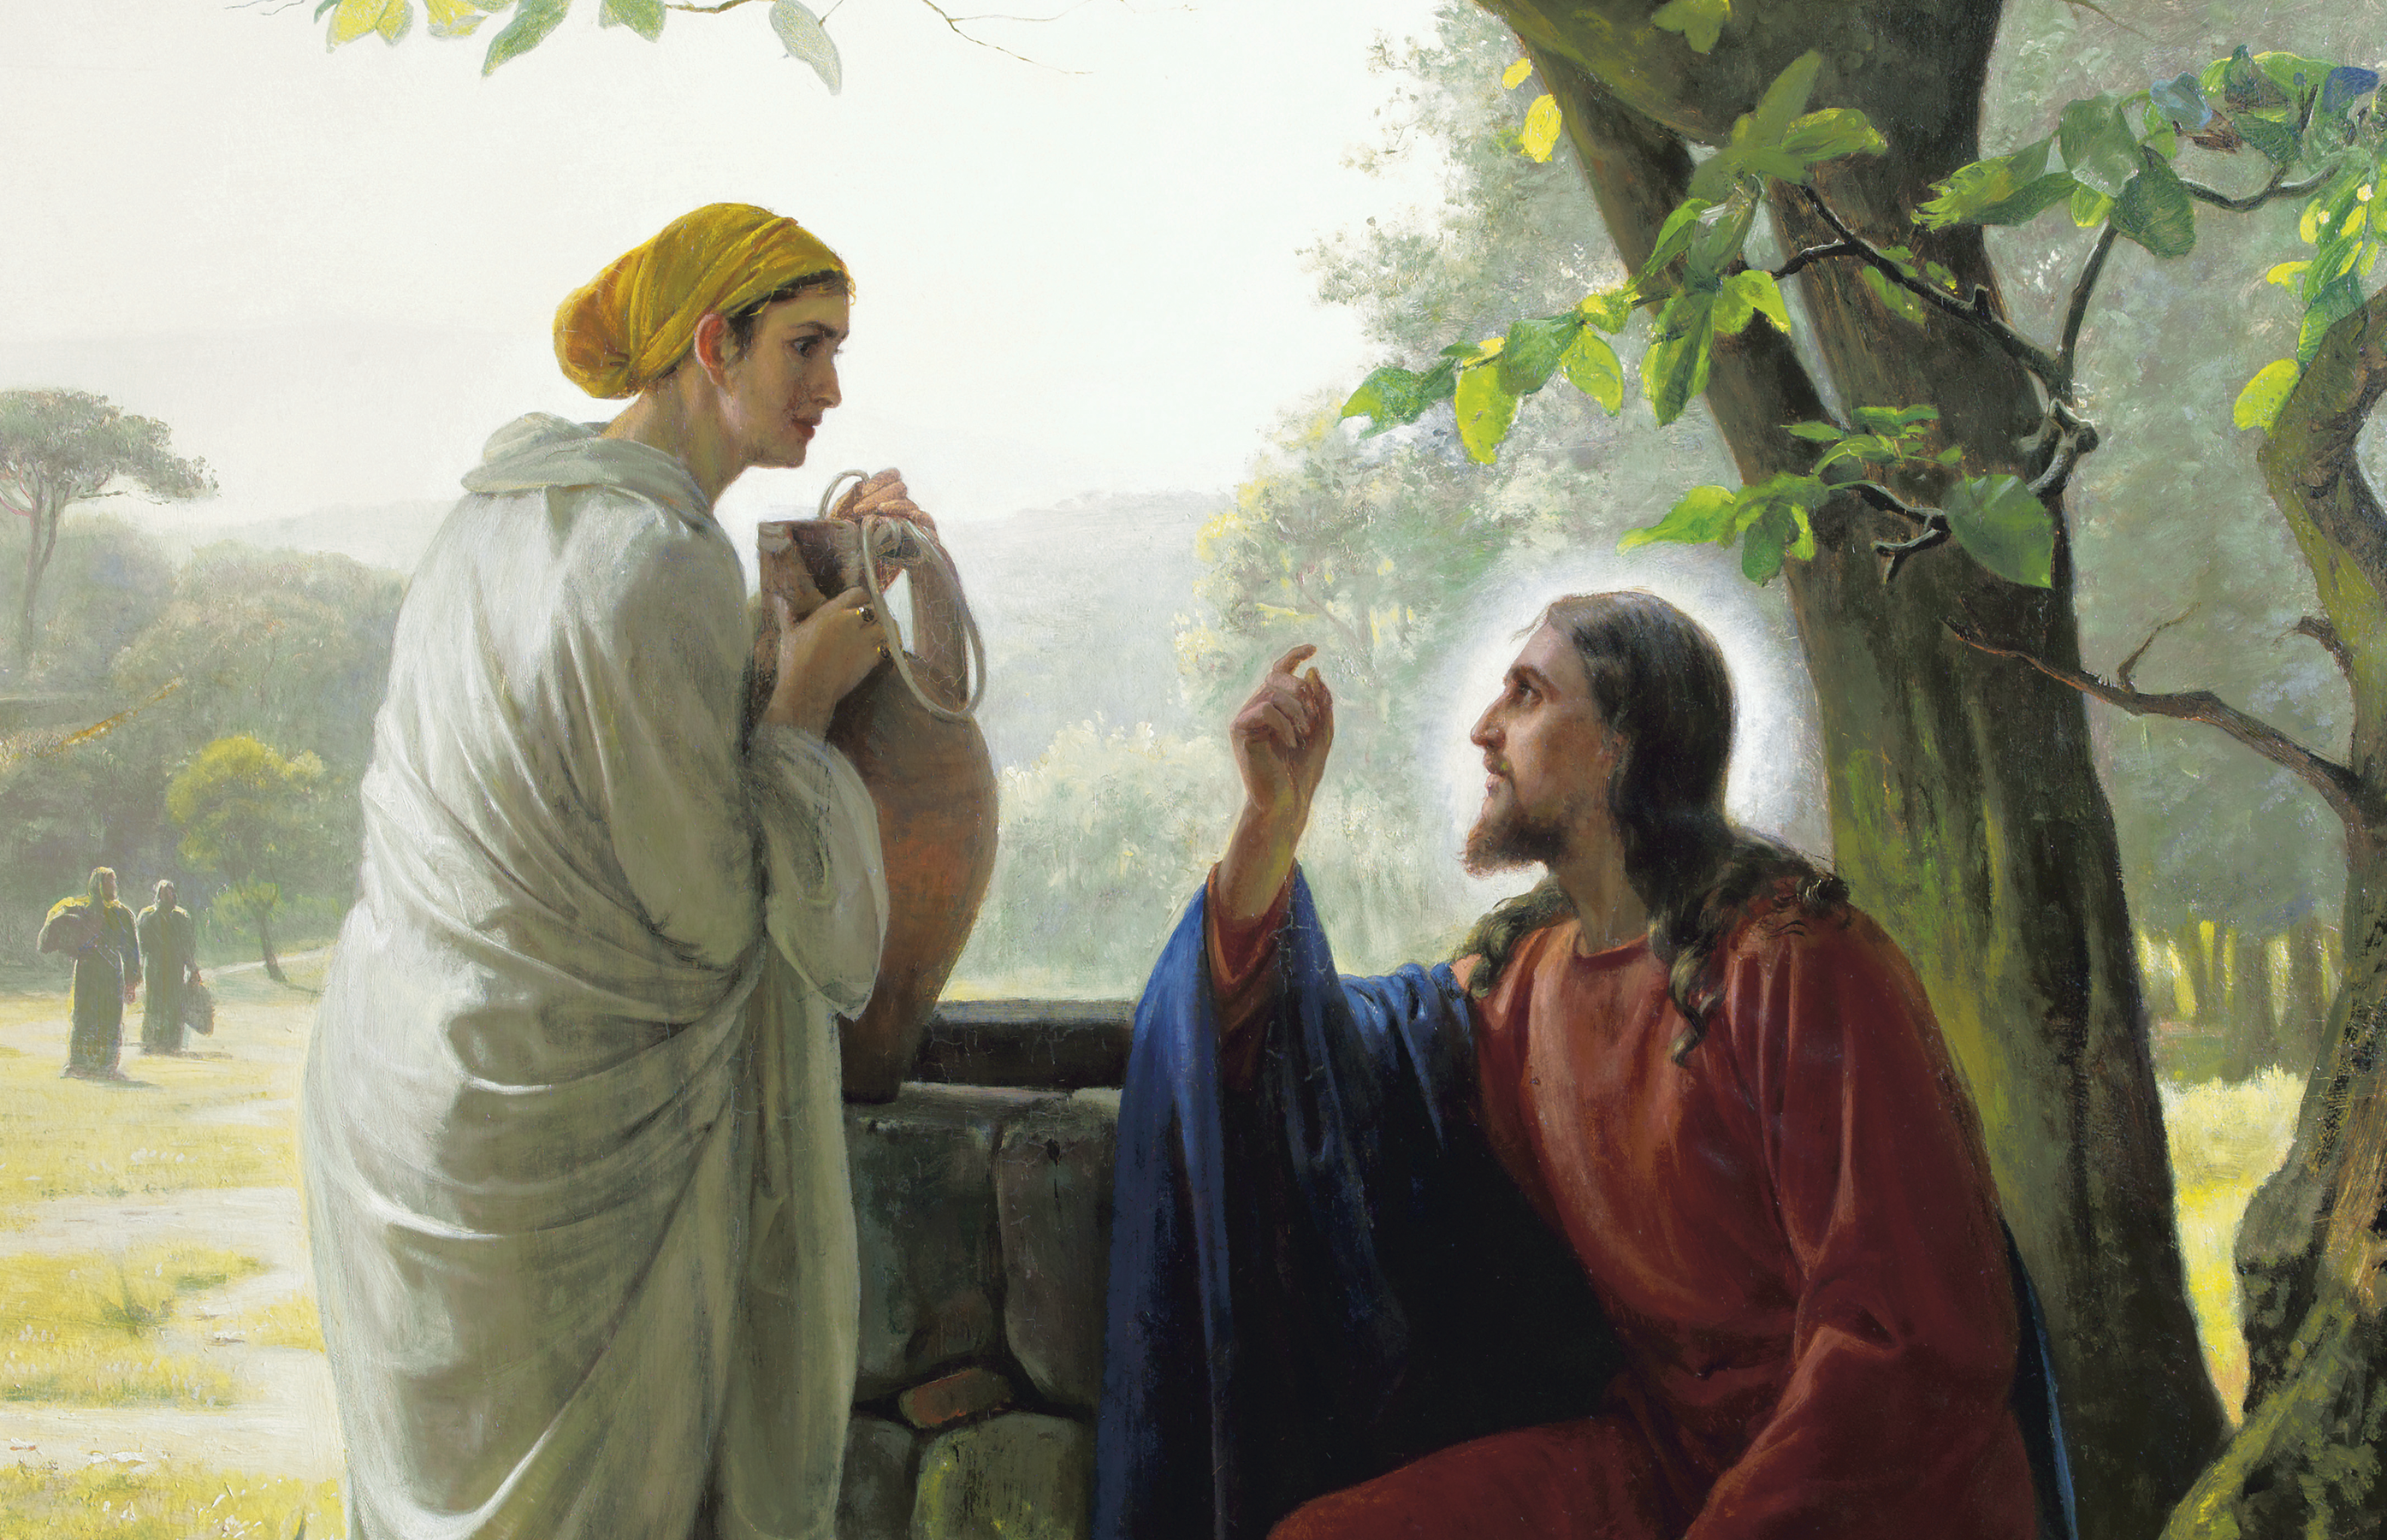 Original painting by Carl Heinrich Bloch (1834-1890) is located in the King's Oratory, The Museum of National History at Frederiksborg Castle in Denmark.